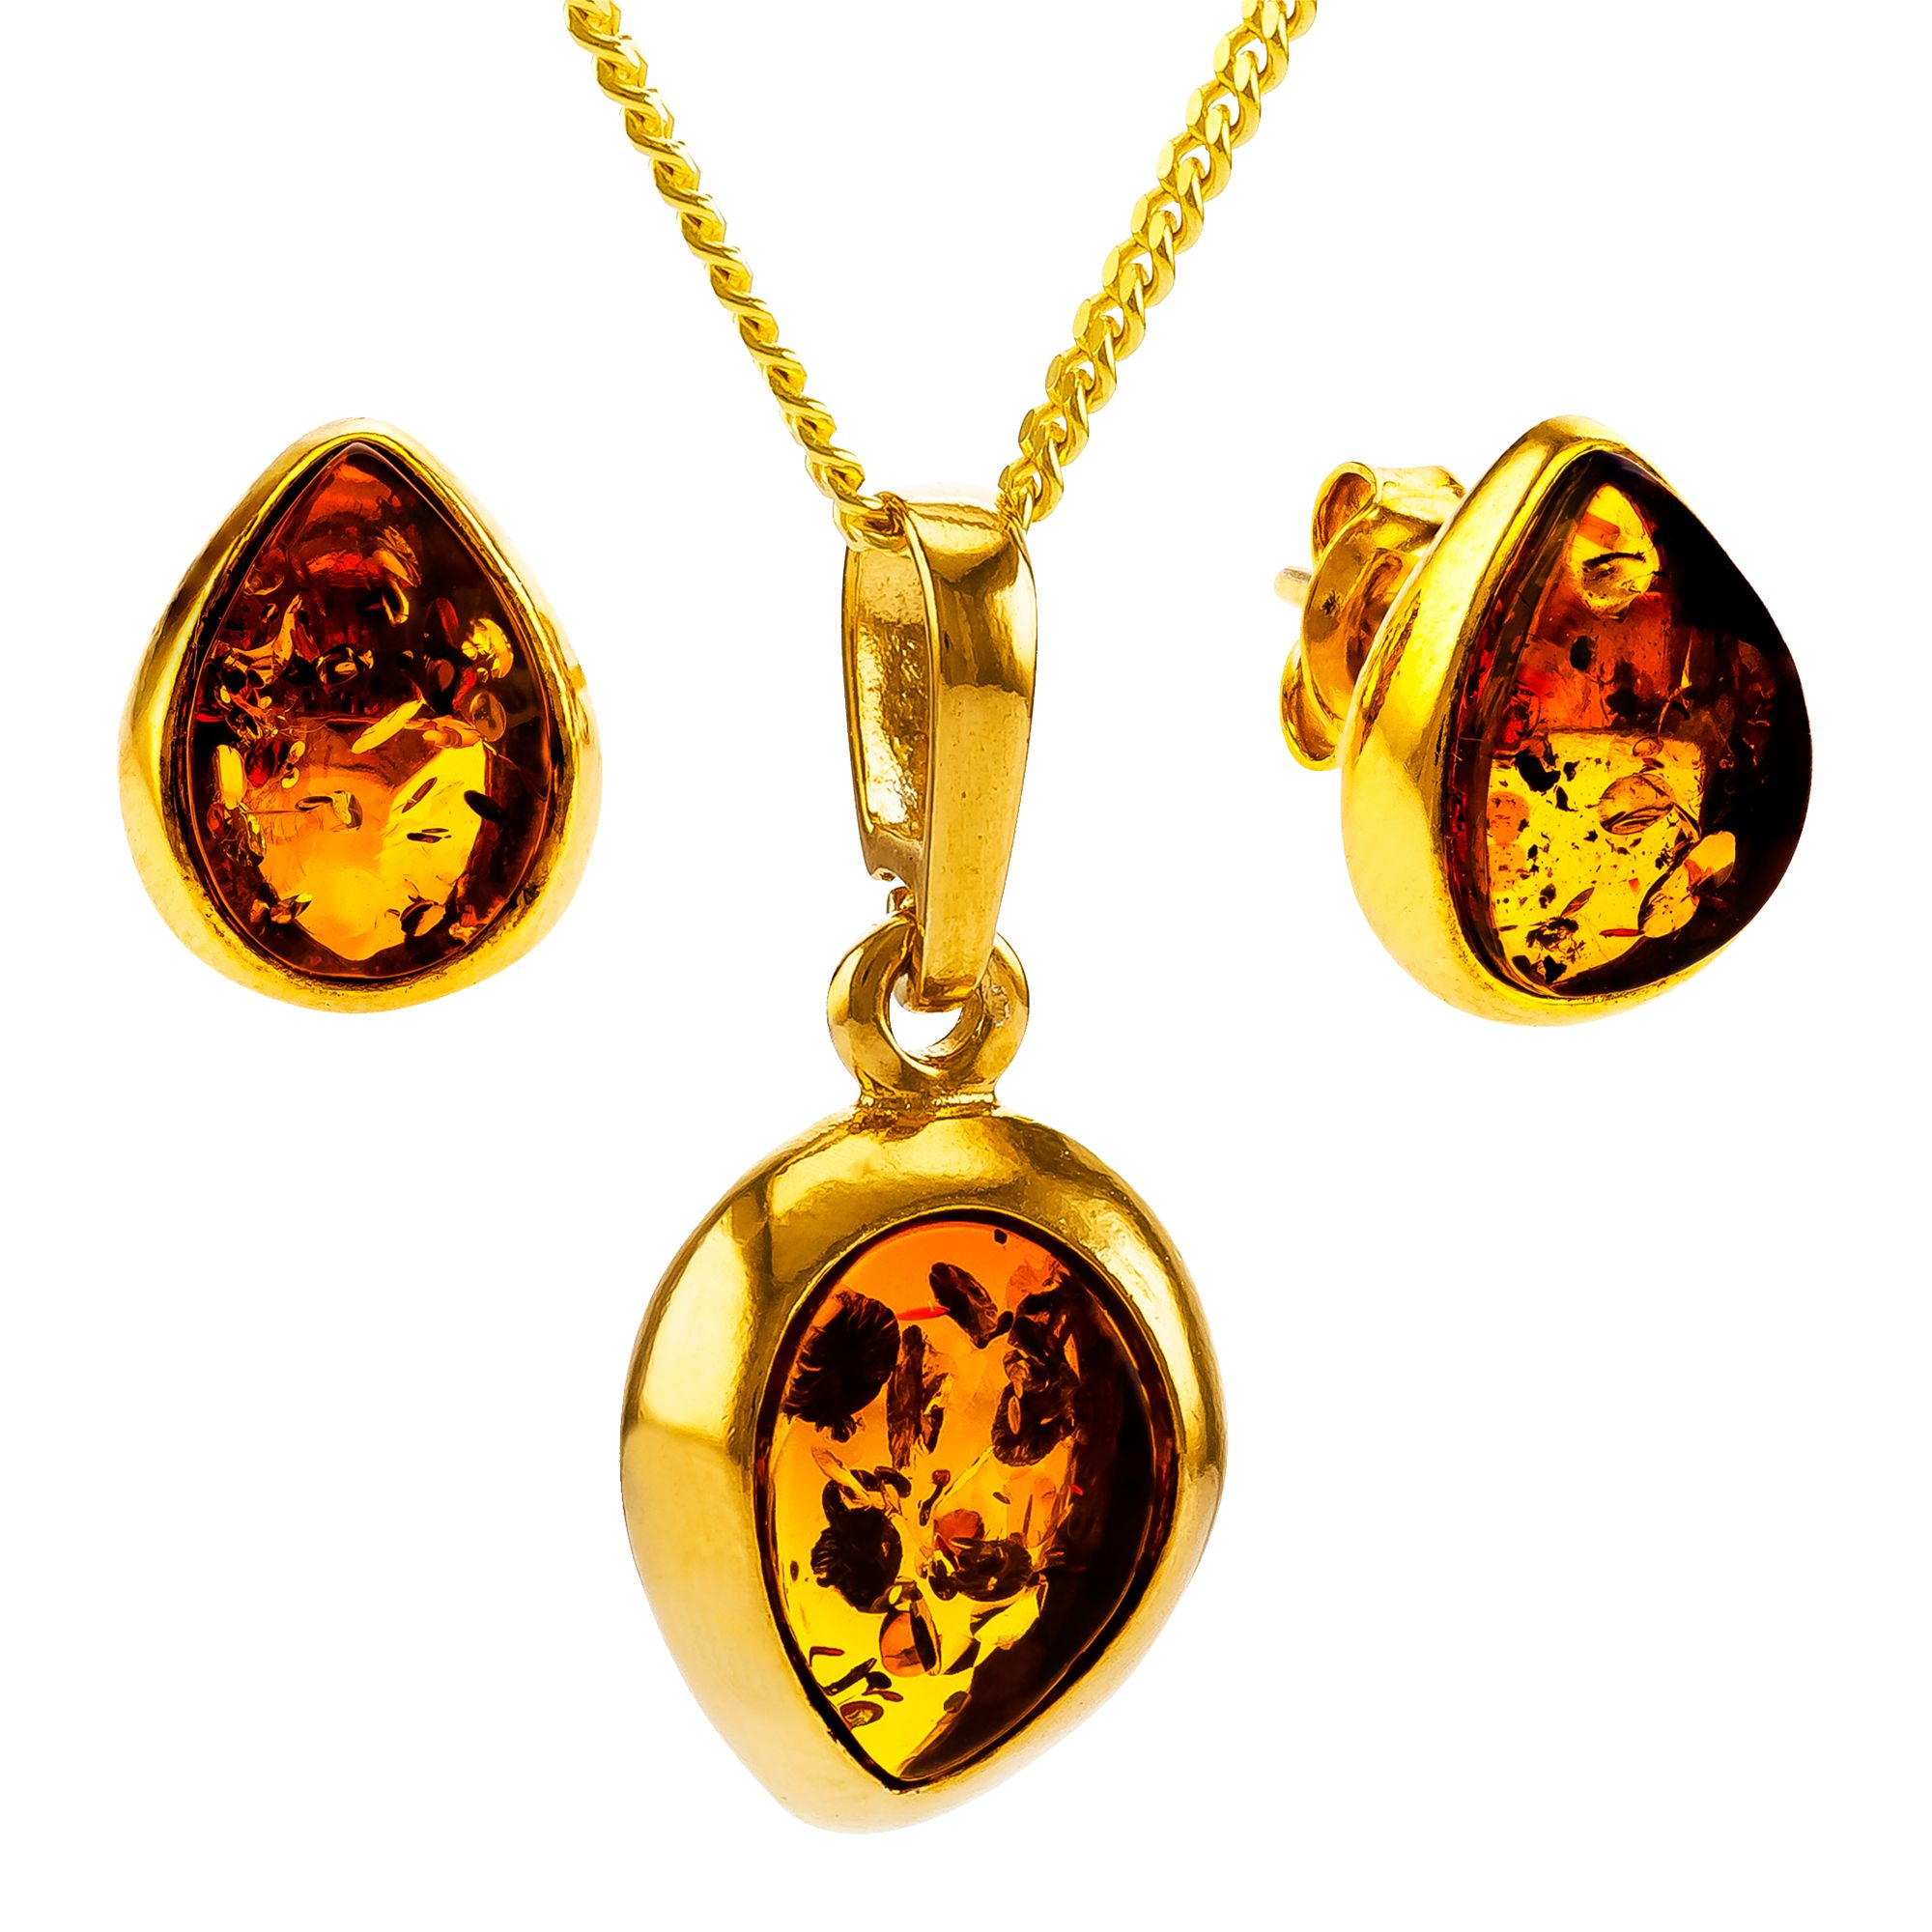 Be-Jewelled Be-Jewelled Teardrop Stud Earrings and Pendant Necklace Jewellery Set, Gold/Cognac